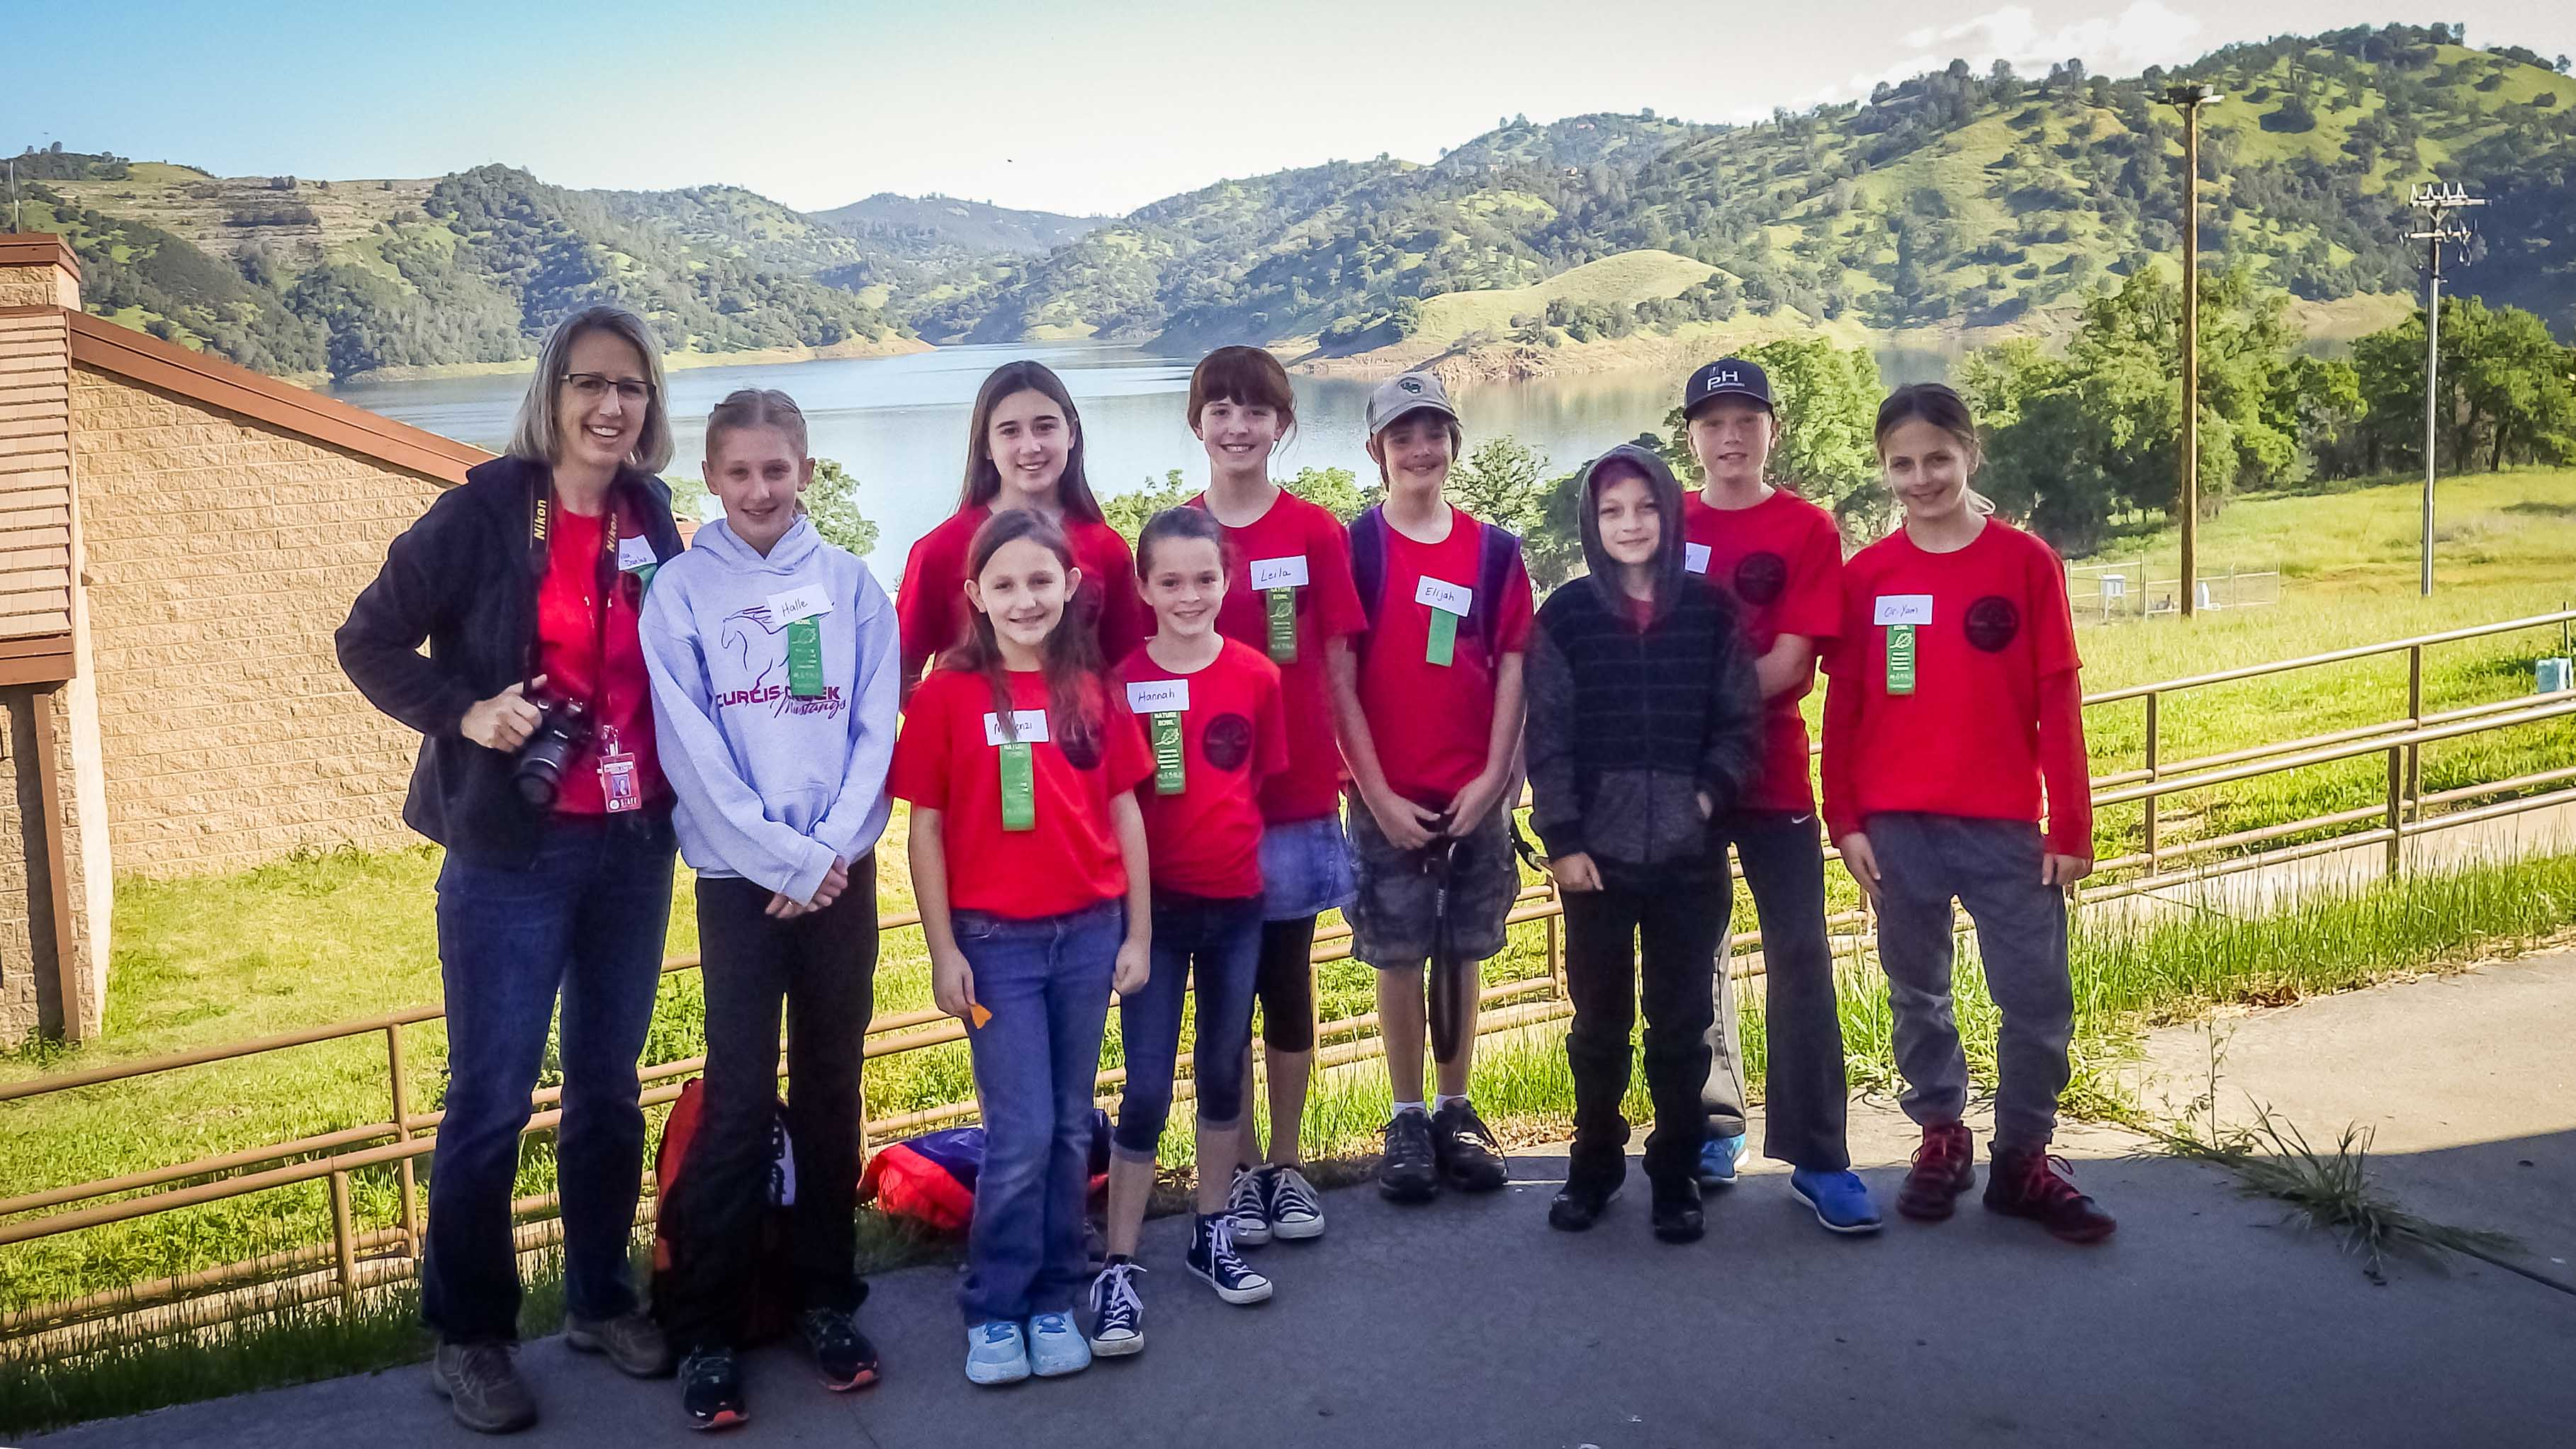 The smiling faces belong to one of fourteen teams competing in Nature Bowl